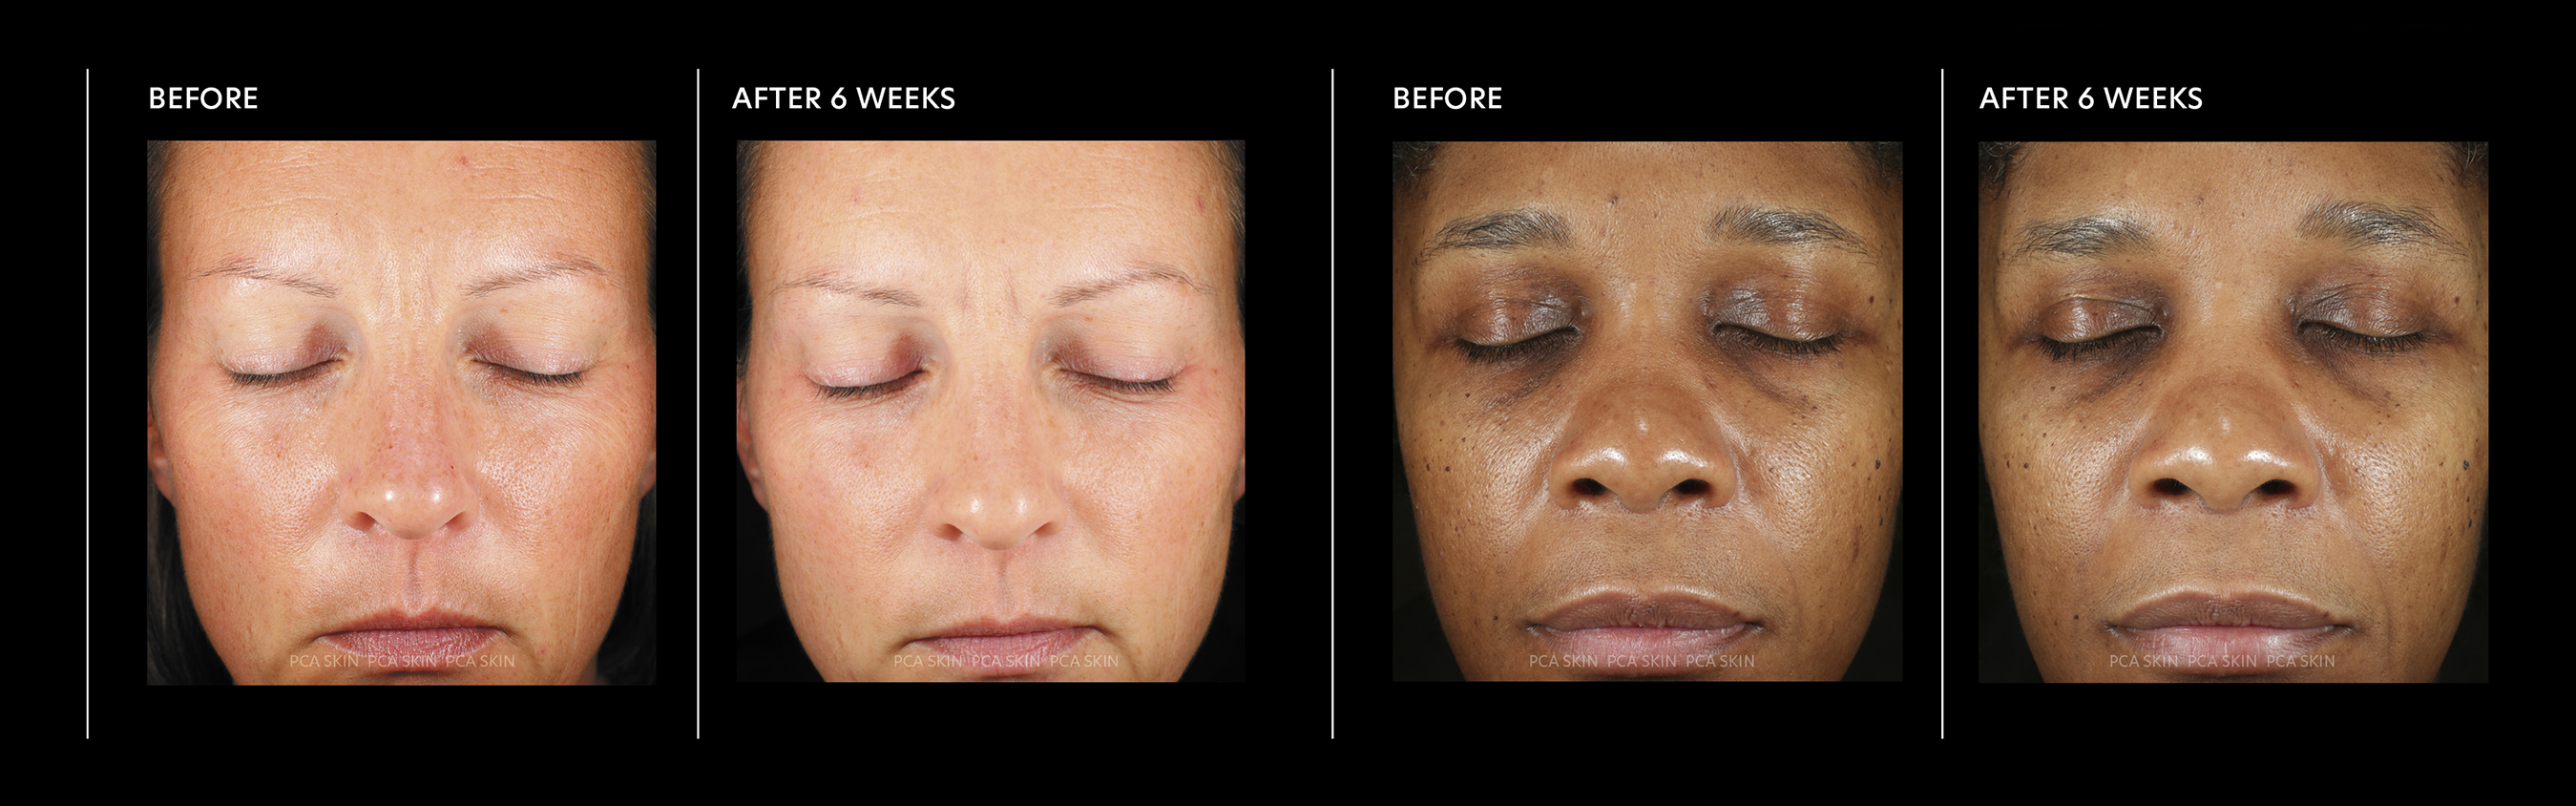 PCA SKIN Hyaluronic Acid Boosting Serum Clinical Study Results